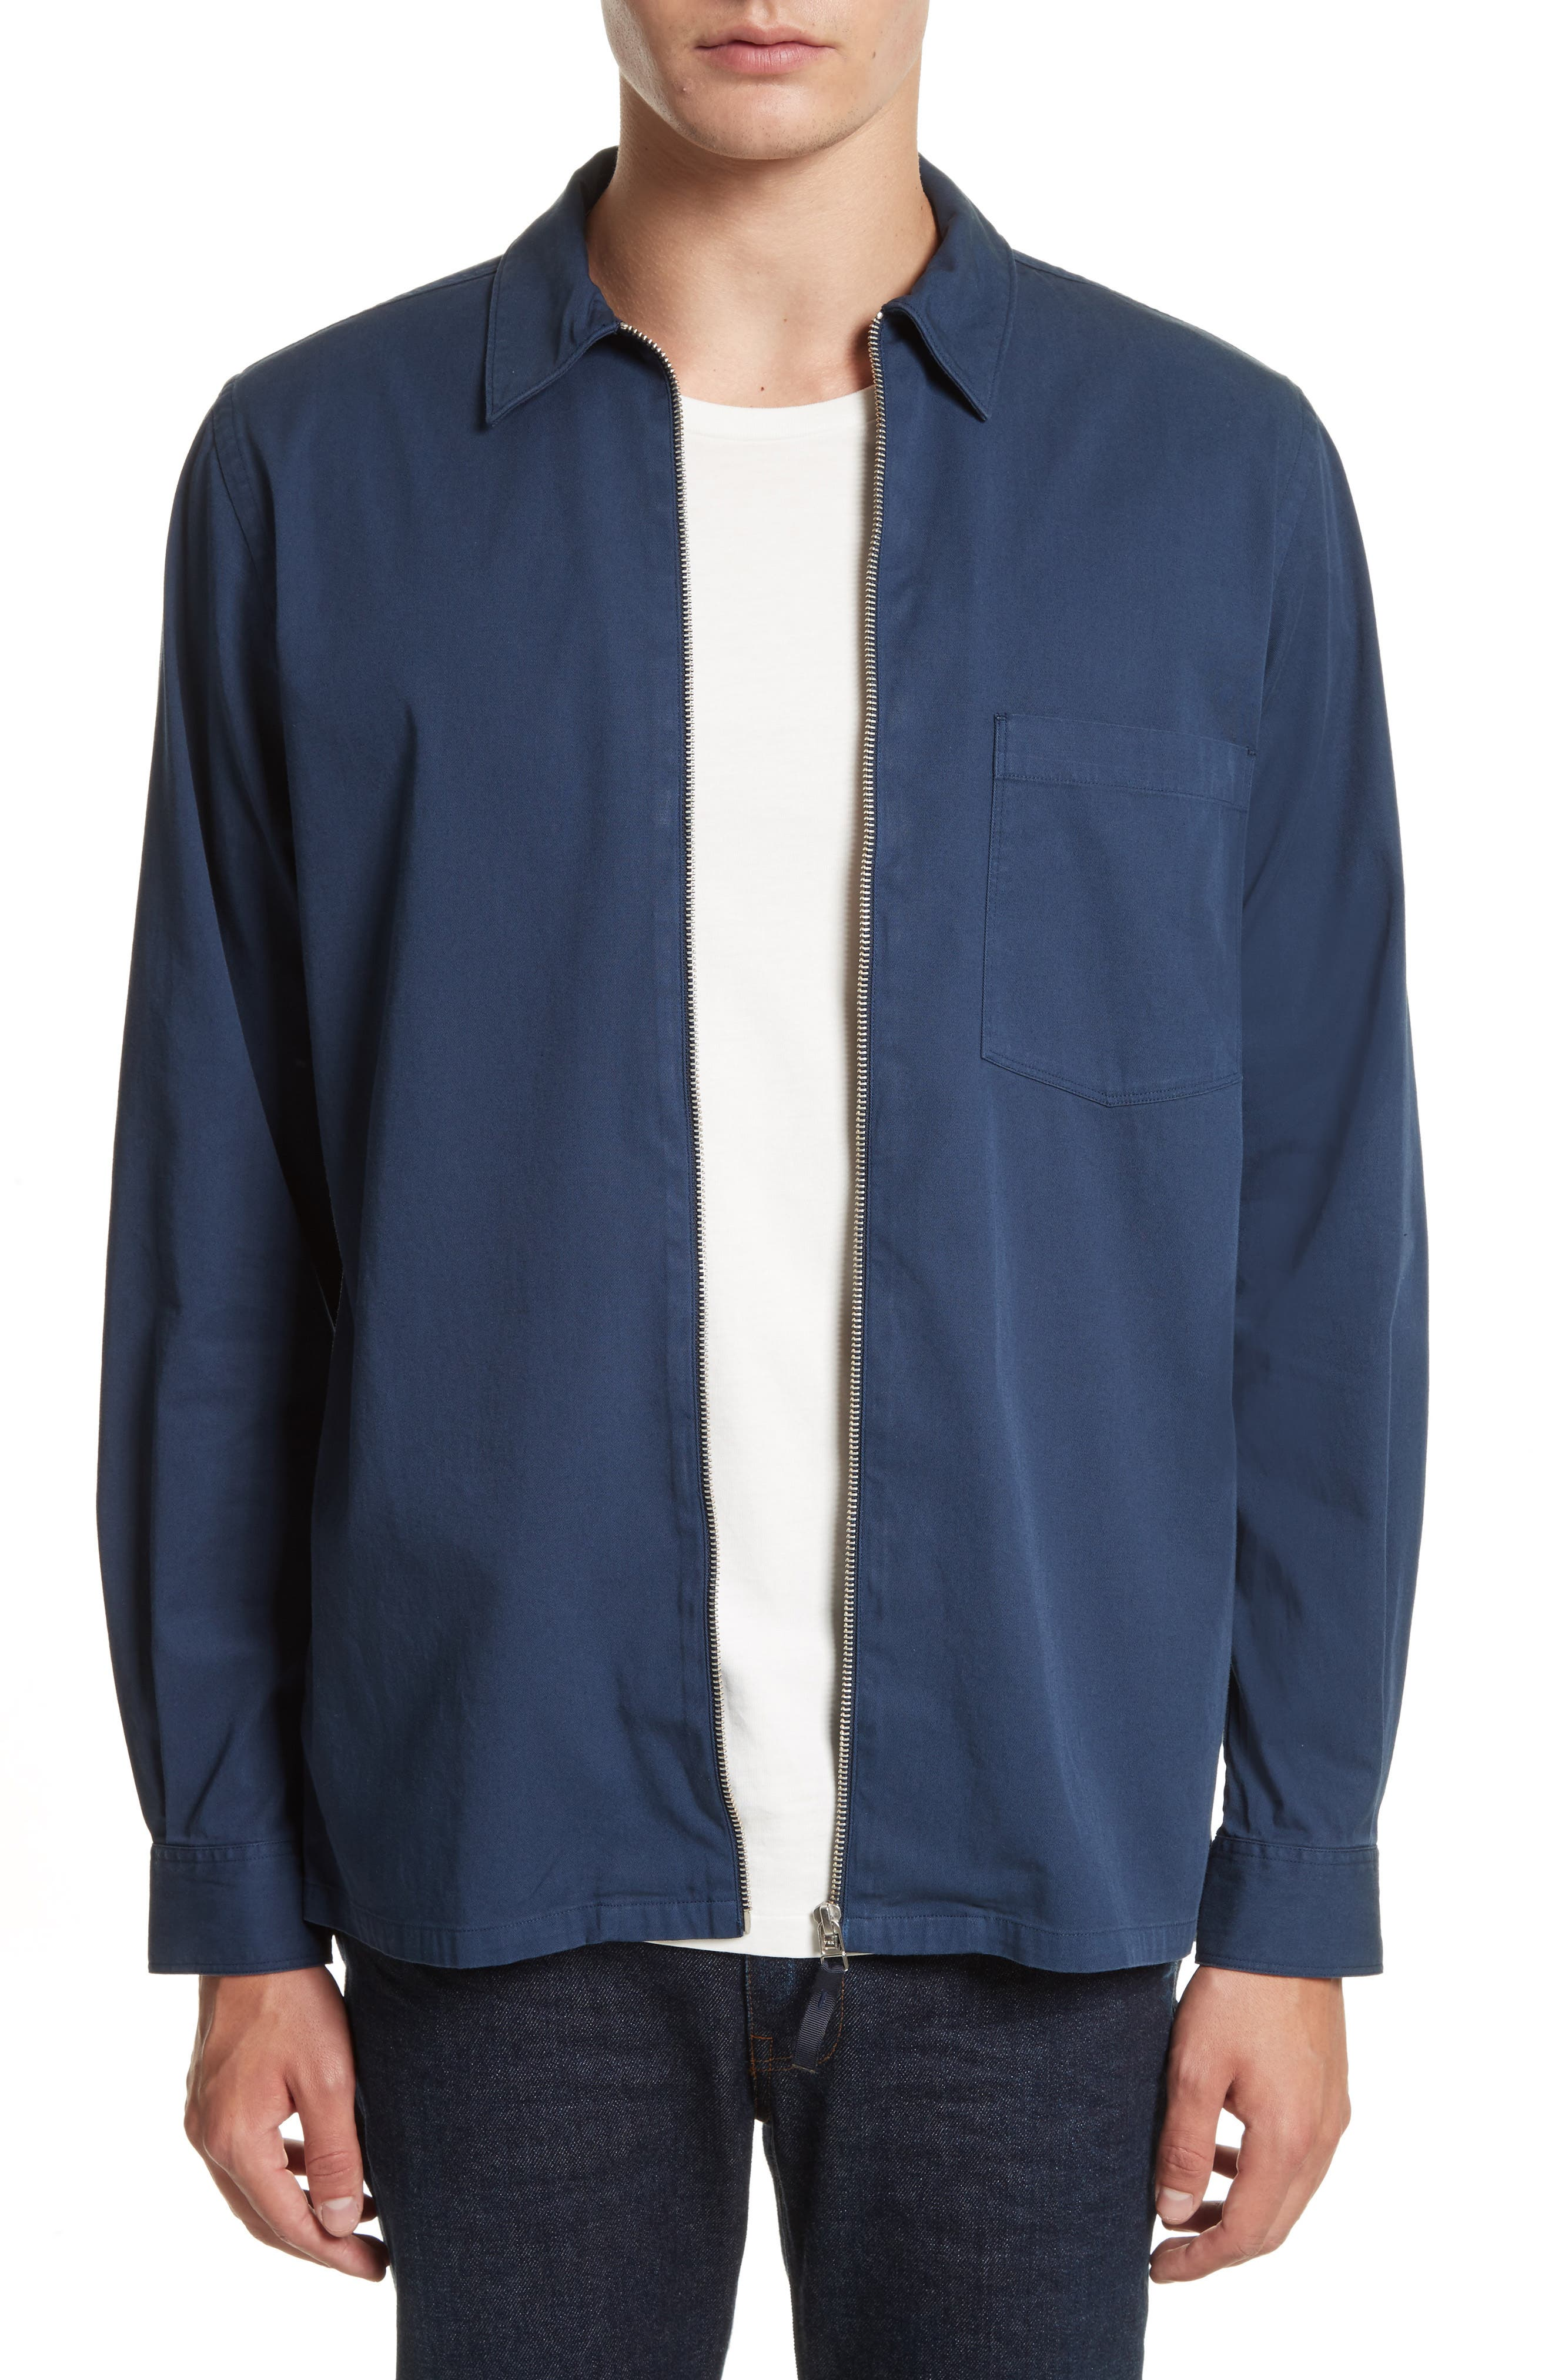 Jens Garment Dyed Twill Jacket,                         Main,                         color, Navy